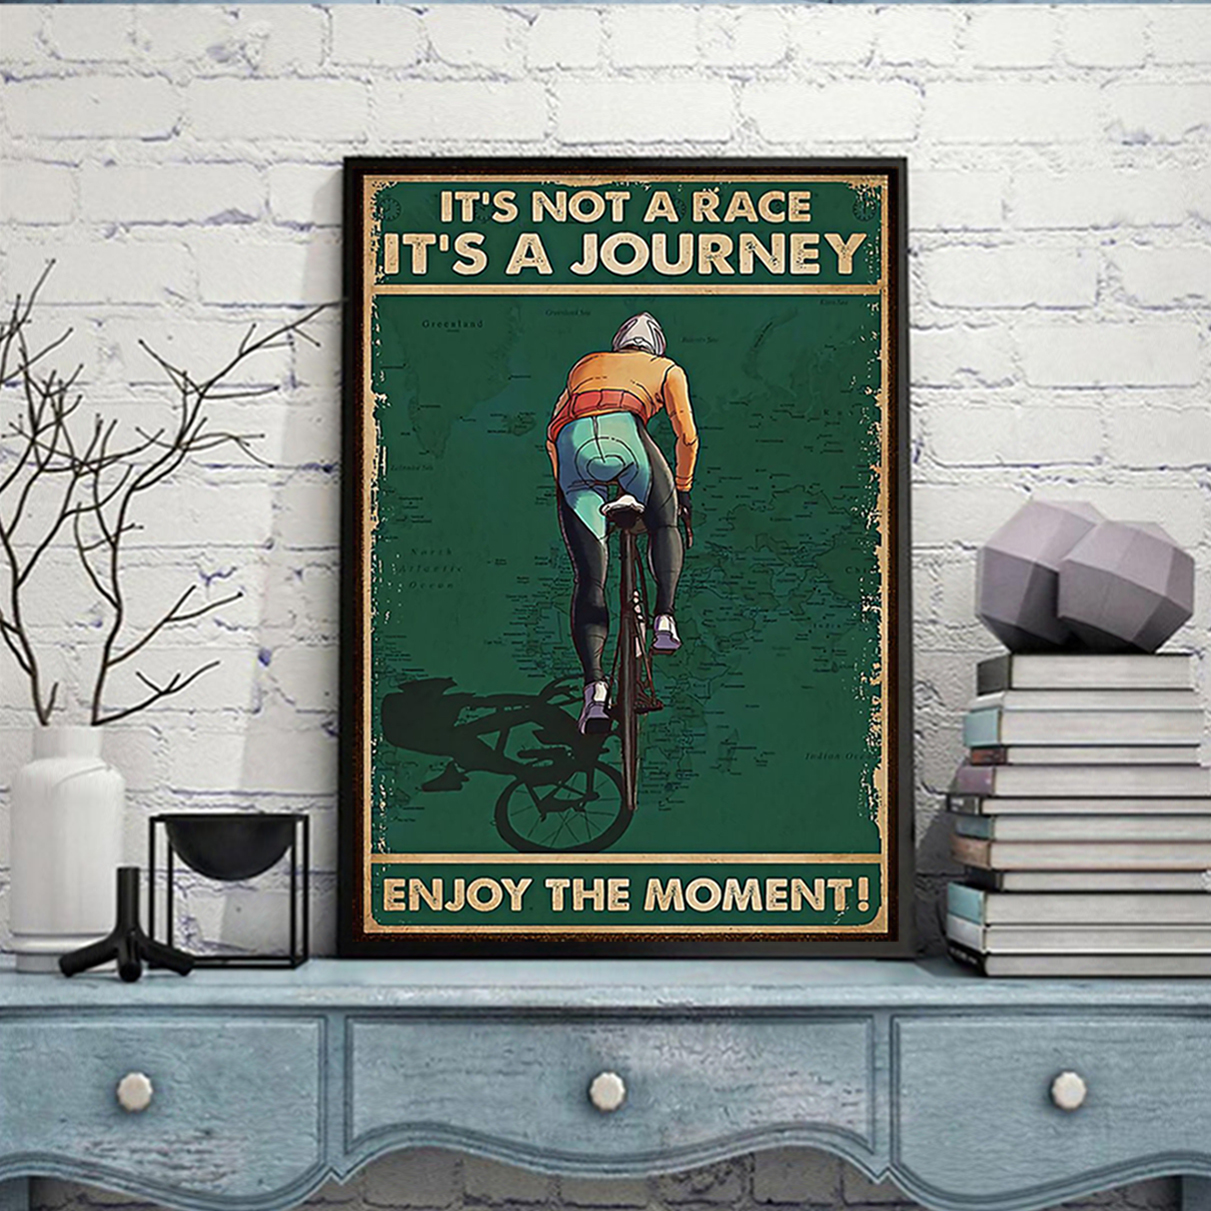 Cycling it's not a race it's a journey enjoy the moment poster A3